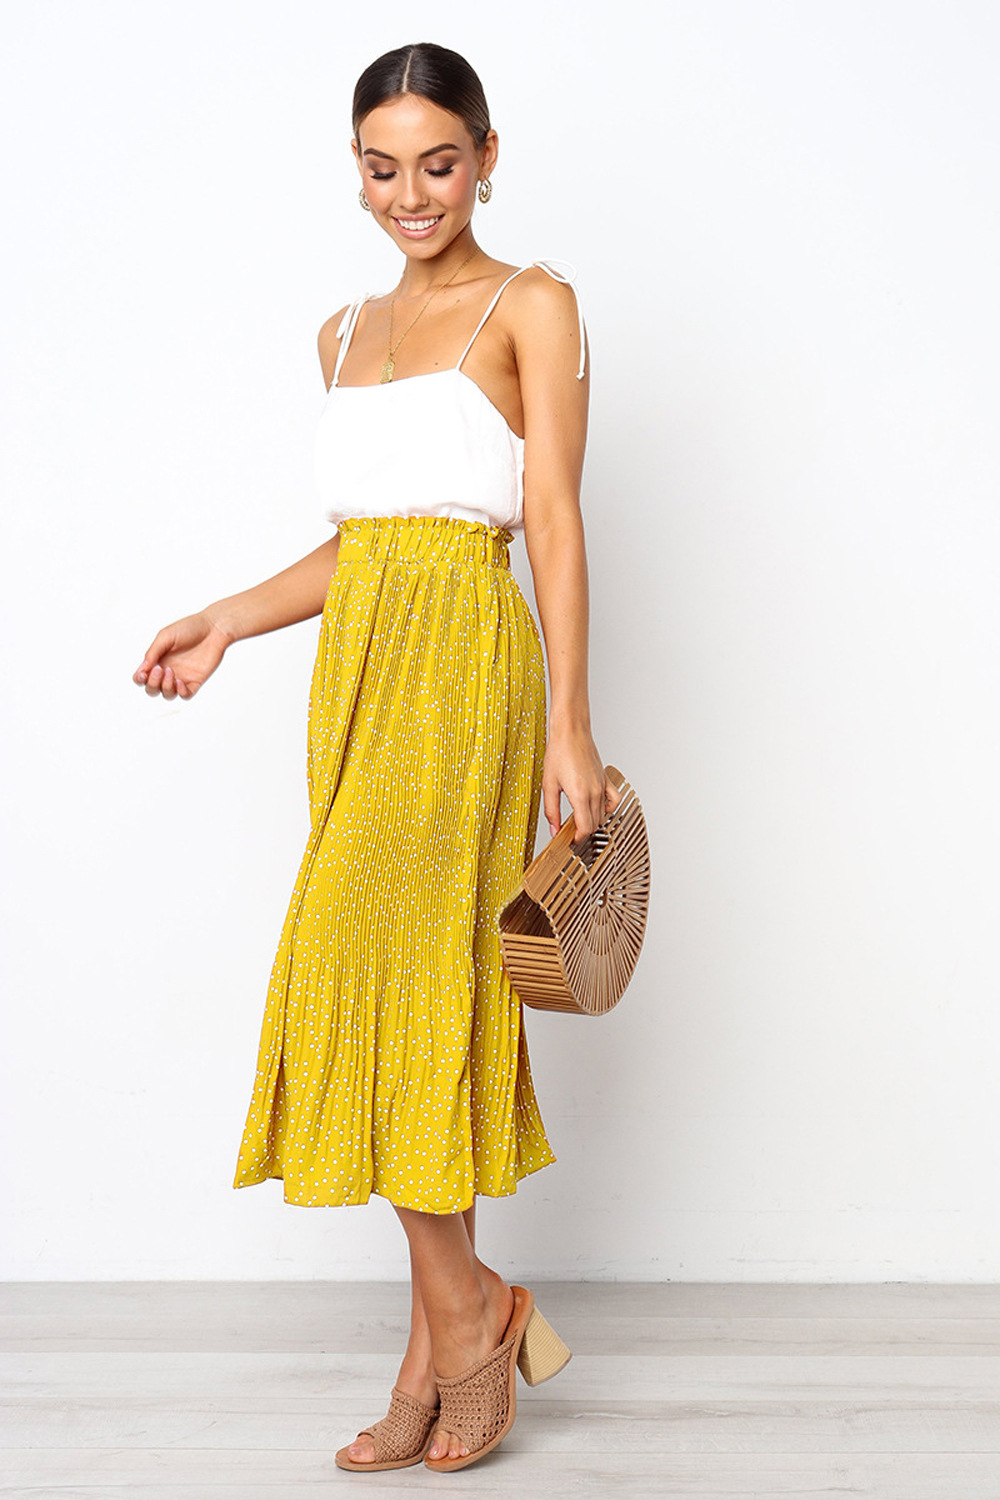 Hcfe65793a06446bcabda414ff9c536914 - Summer Casual Chiffon Print Pockets High Waist Pleated Maxi Skirt Womens Long Skirts For Women